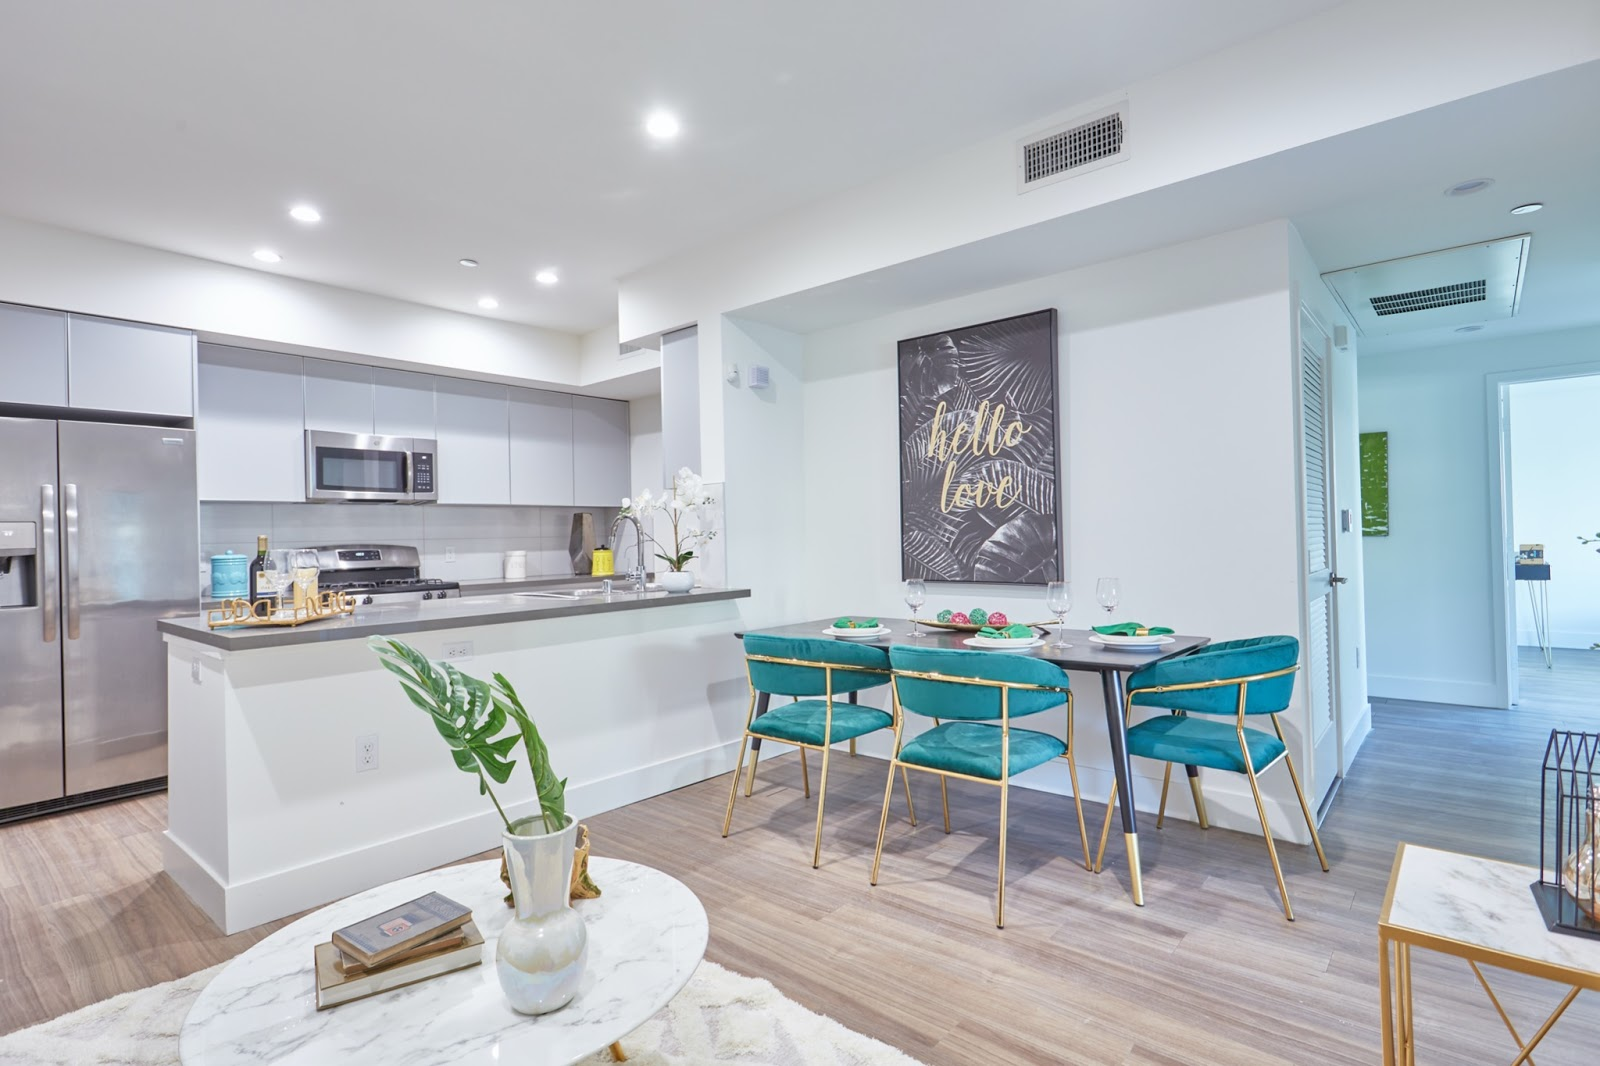 Tripalink staged beautiful apartment